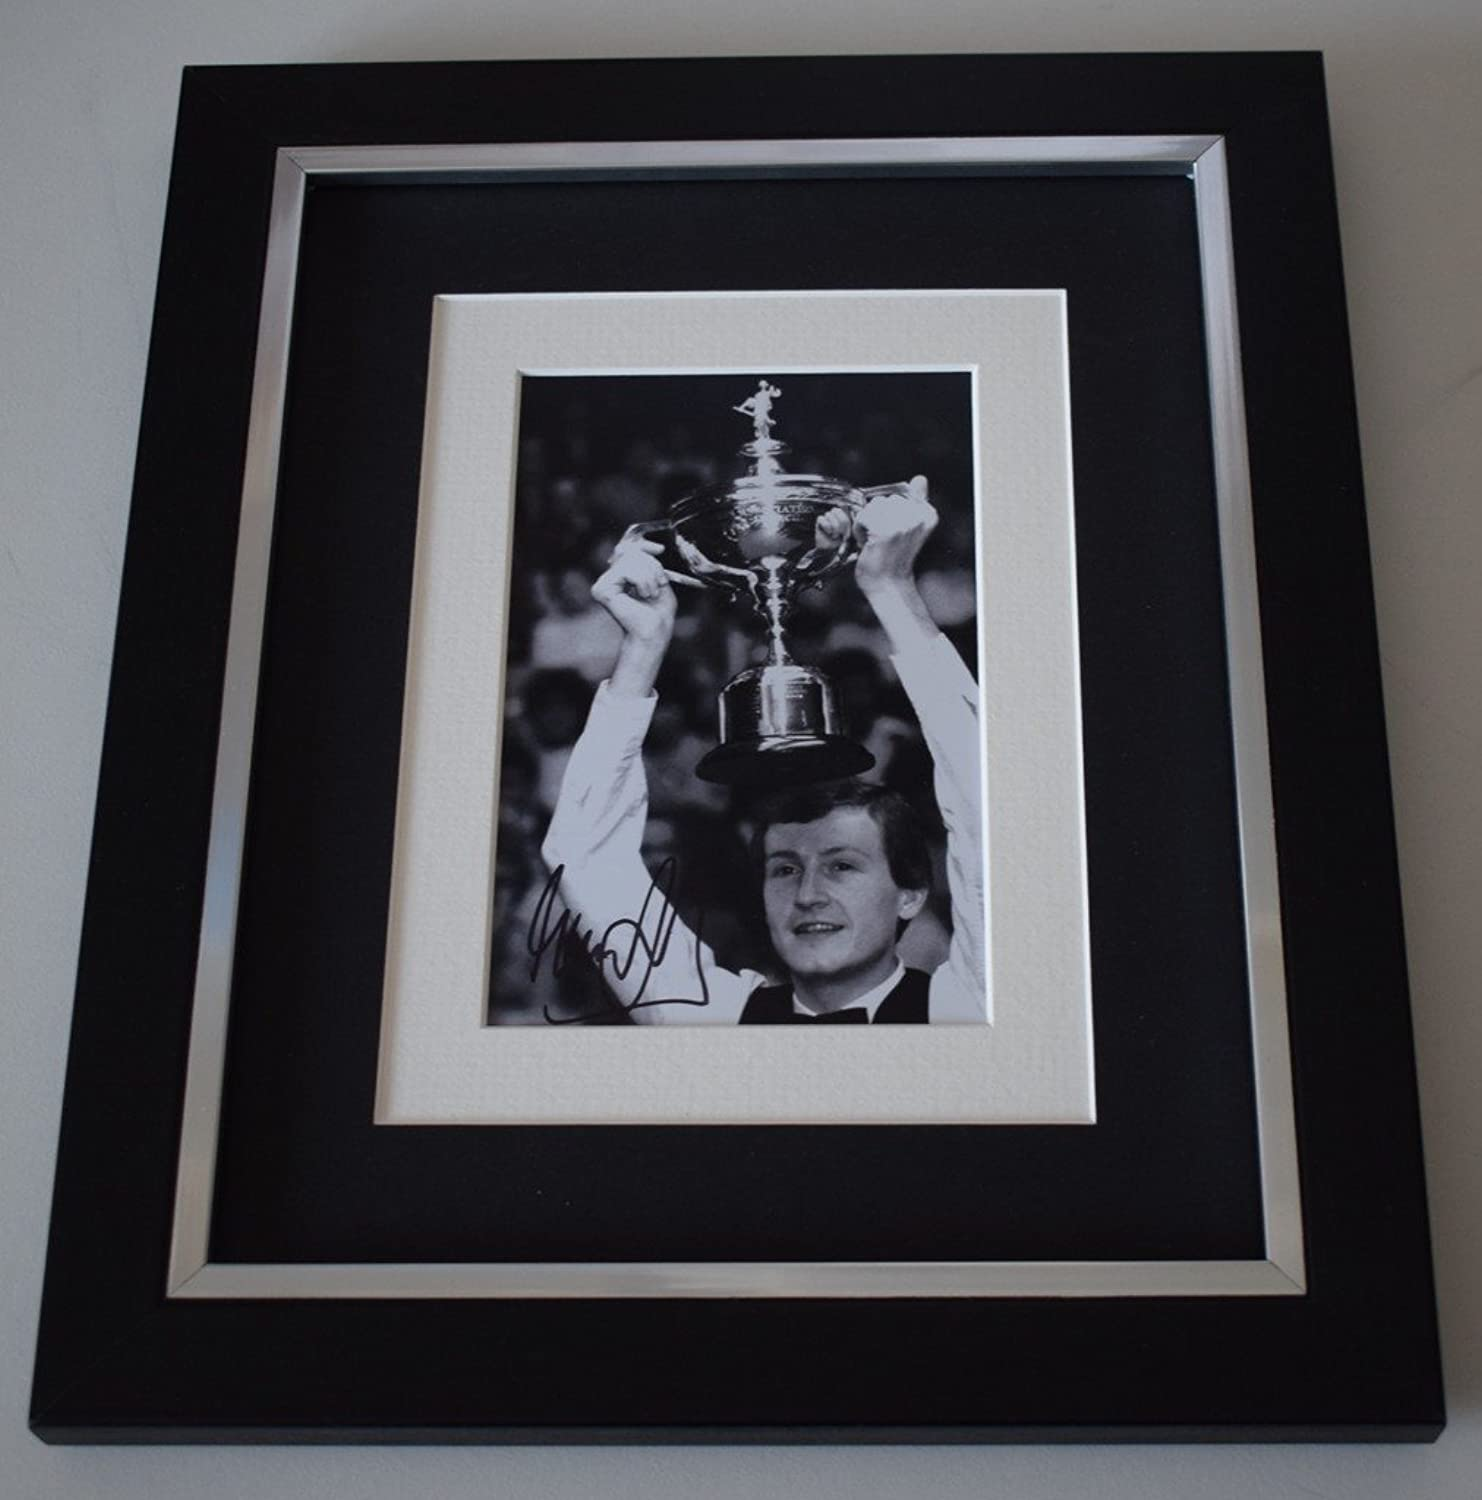 Sportagraphs Steve Davis SIGNED 10x8 FRAMED Photo Autograph Display Snooker AFTAL & COA PERFECT GIFT